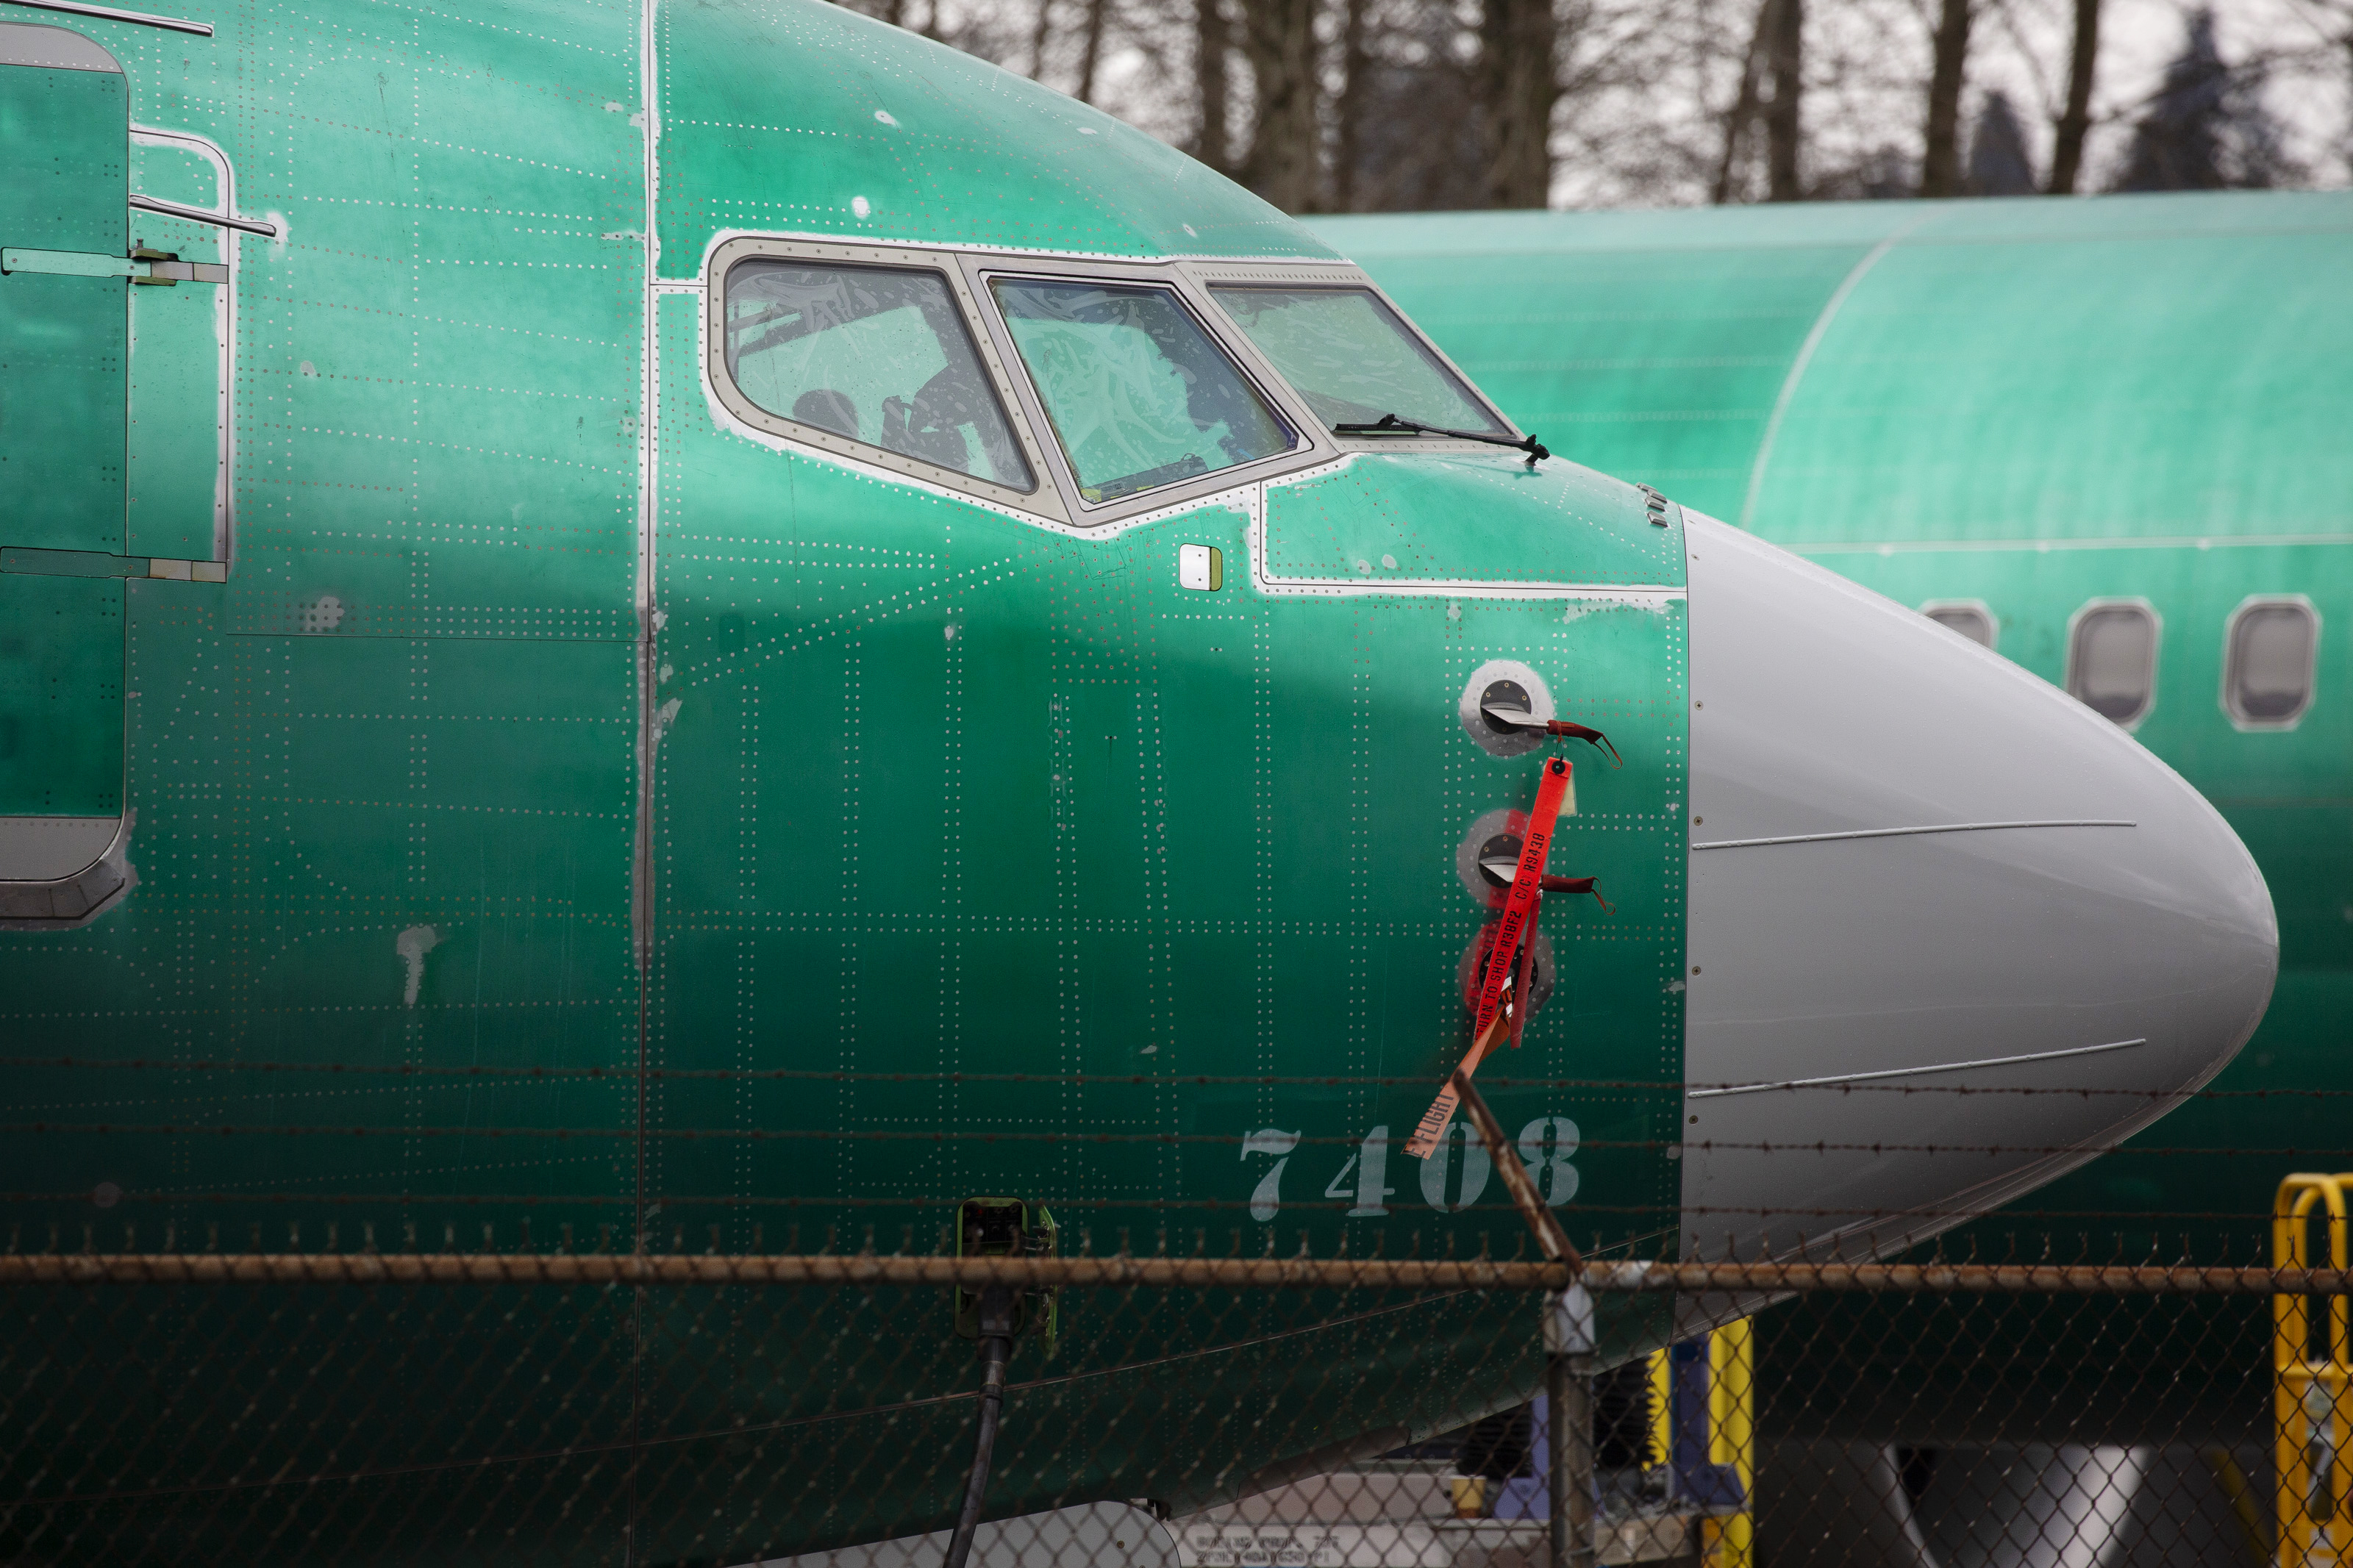 FAA and Boeing defend oversight of 737 Max - The Washington Post